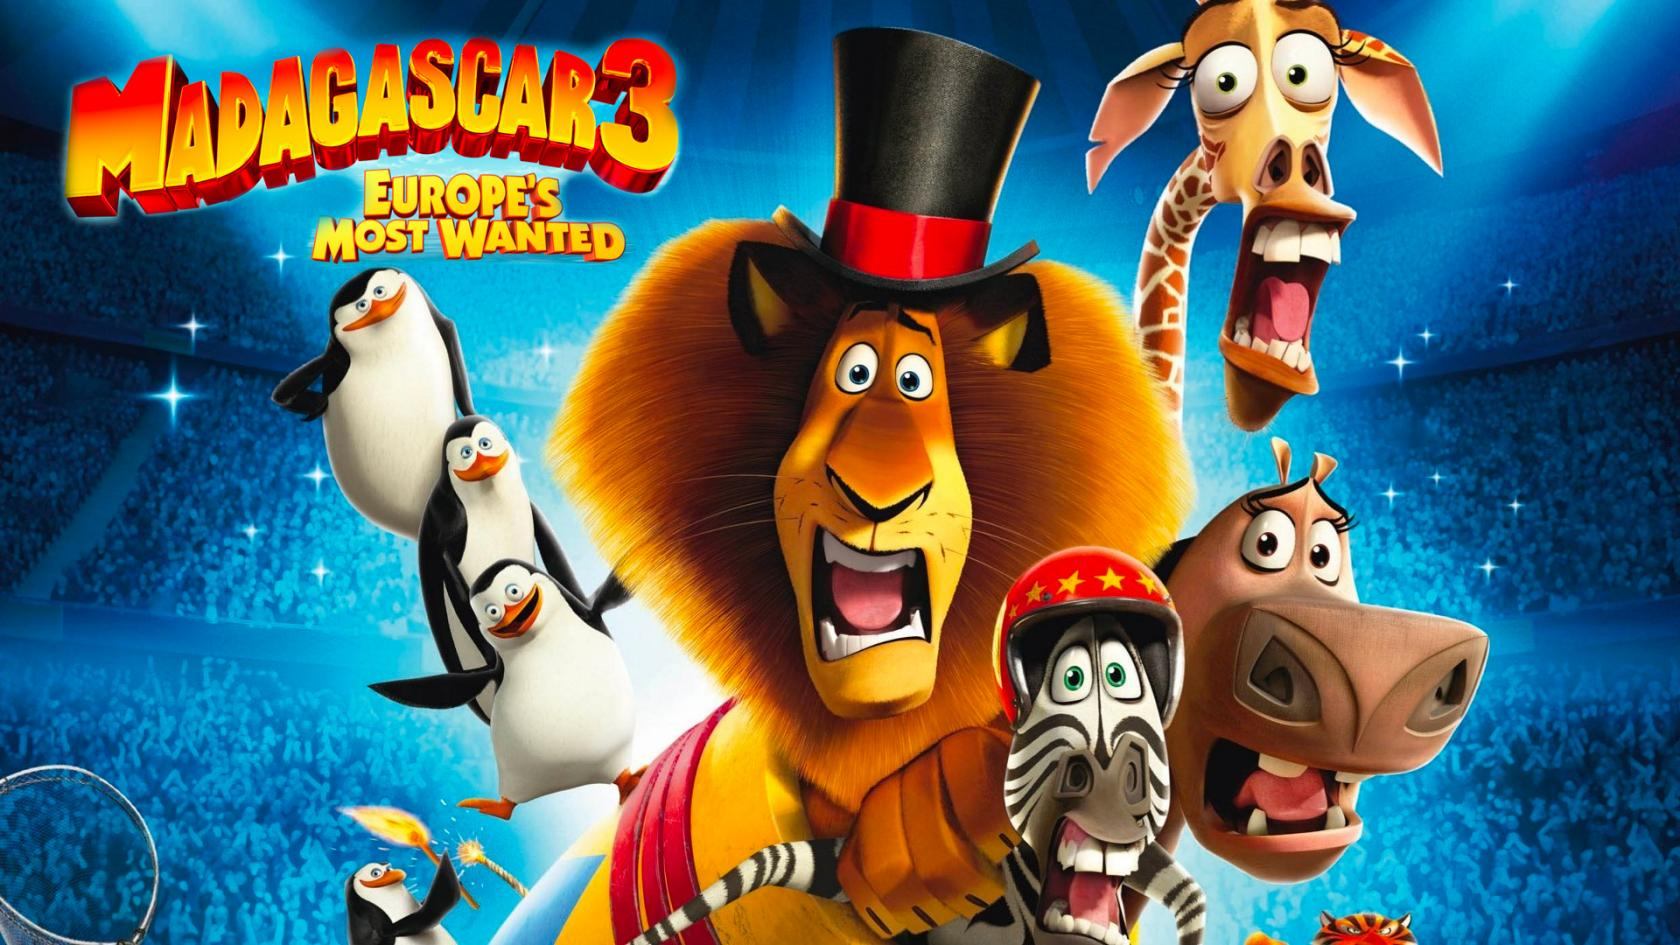 Madagascar 3- Europe's Most Wanted